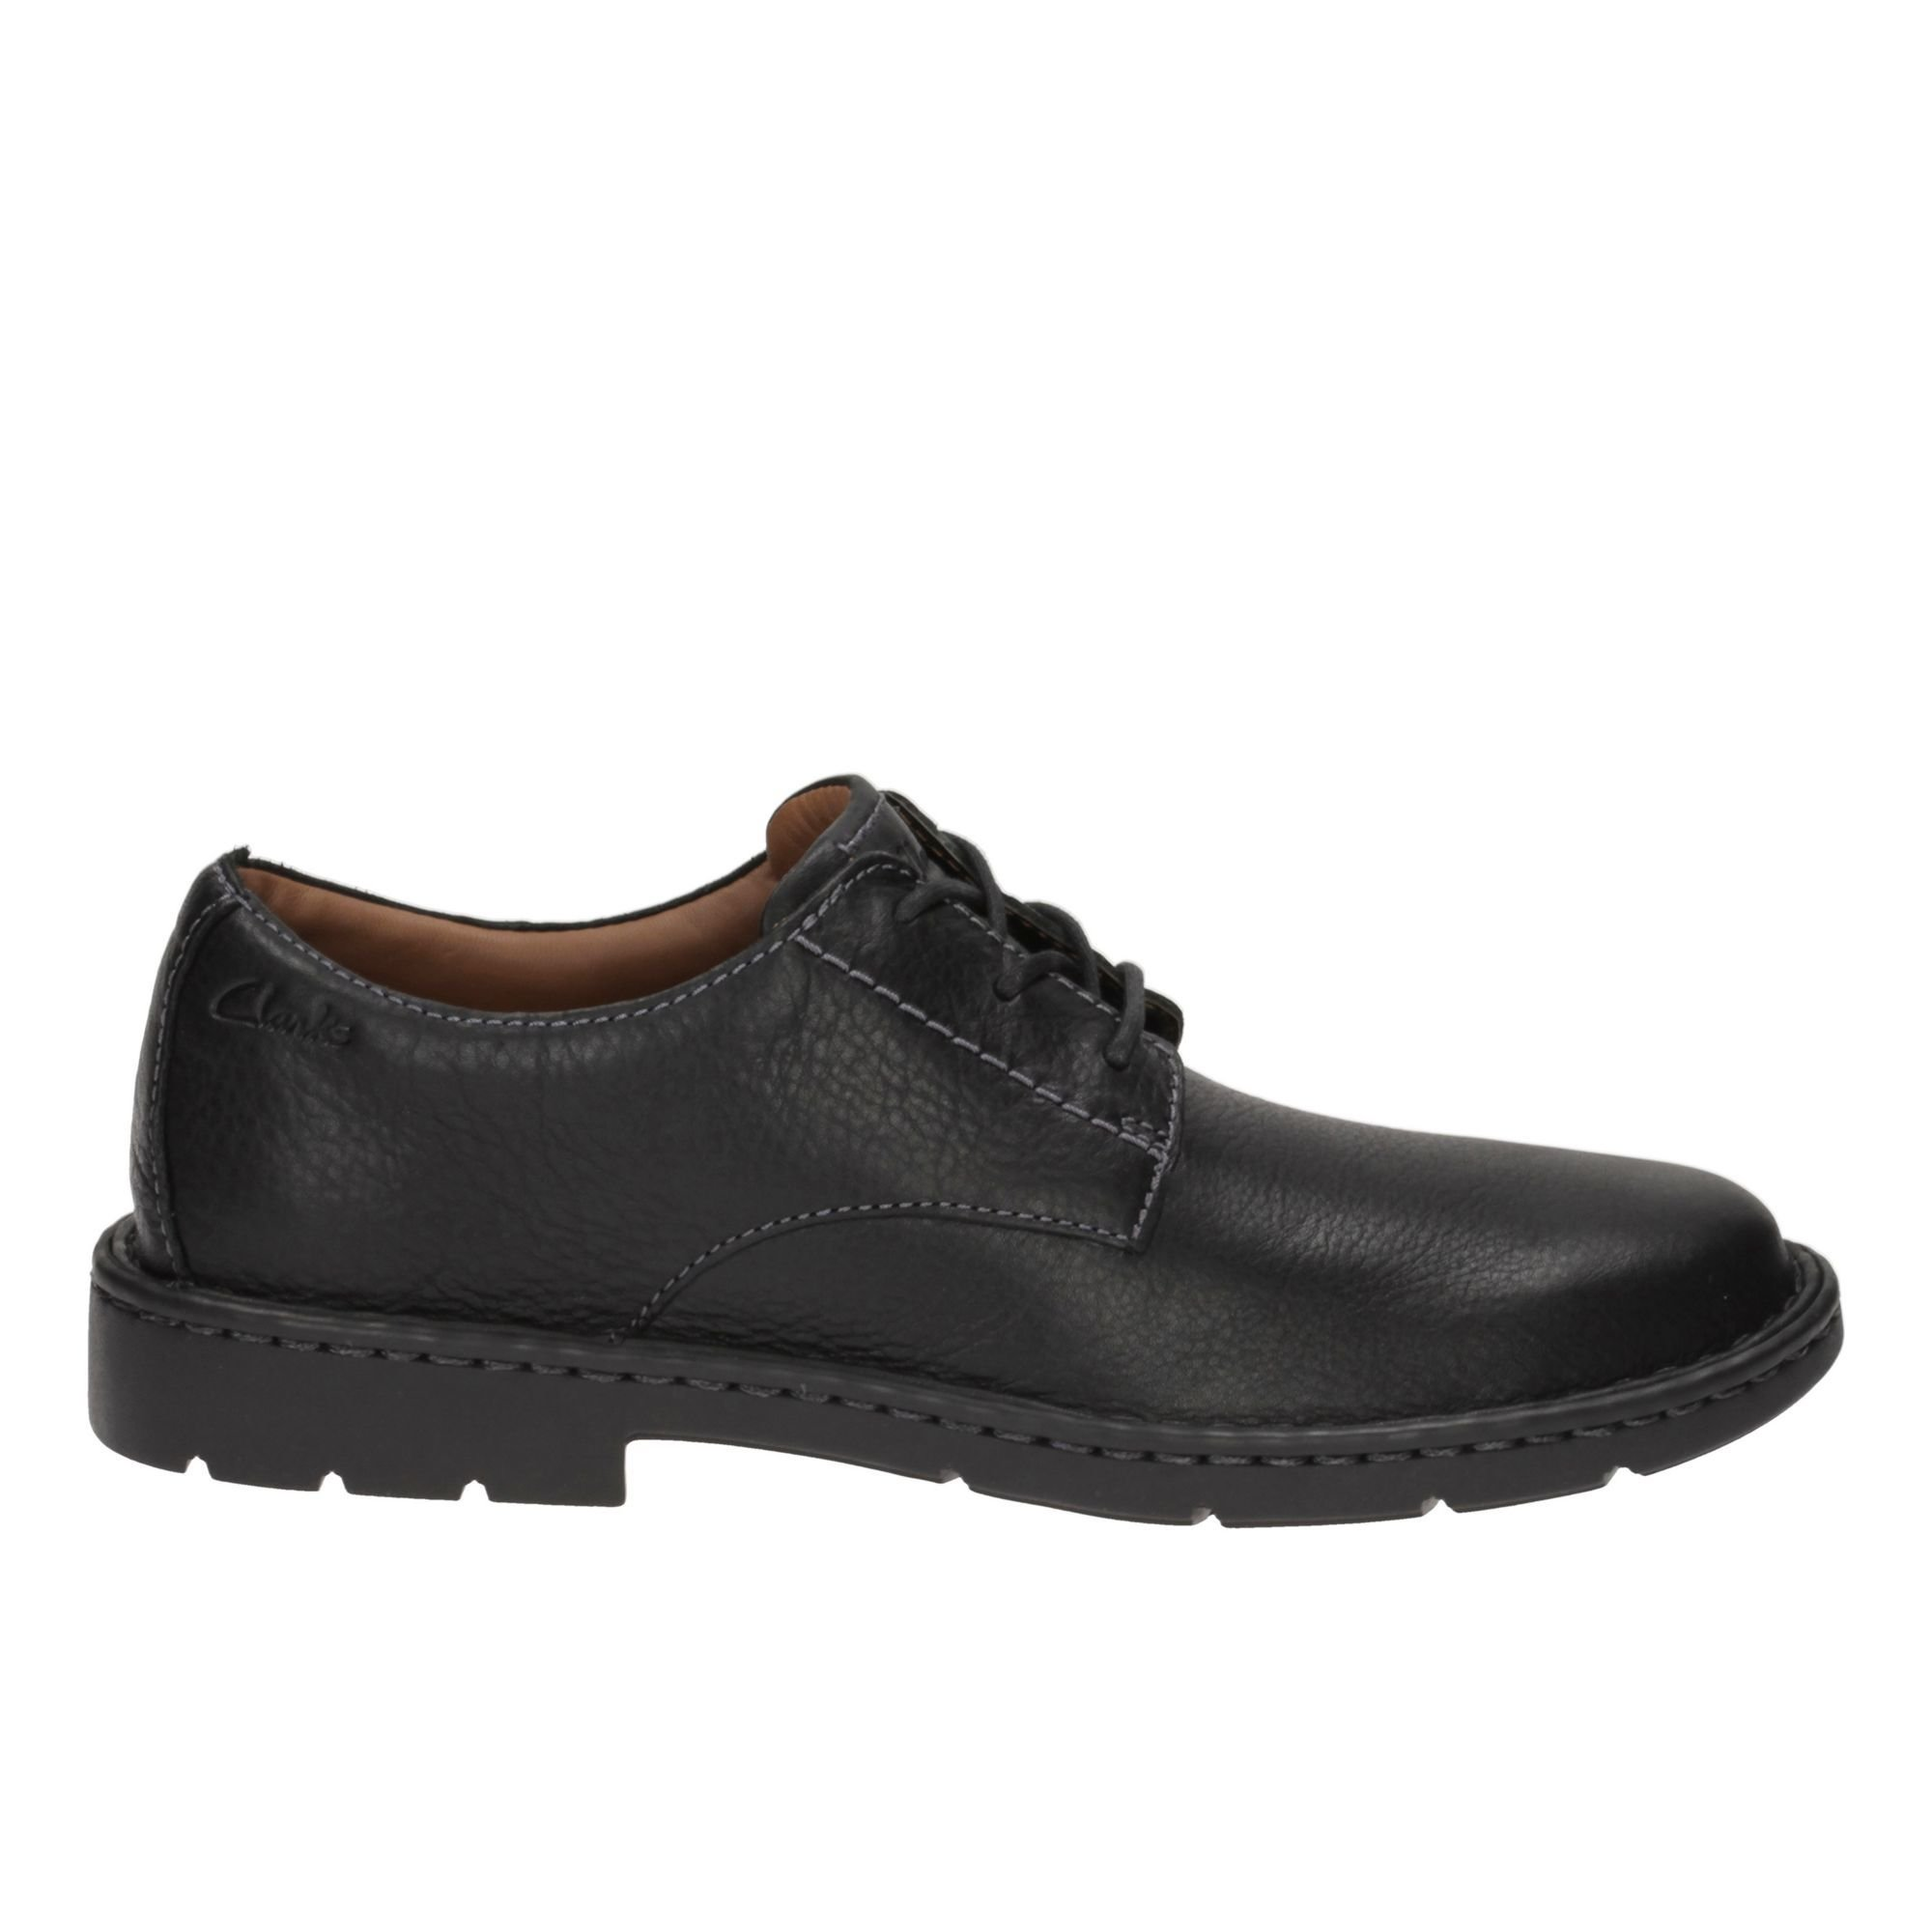 Zapatos Stratton Way Cuero Negro TN-2380073